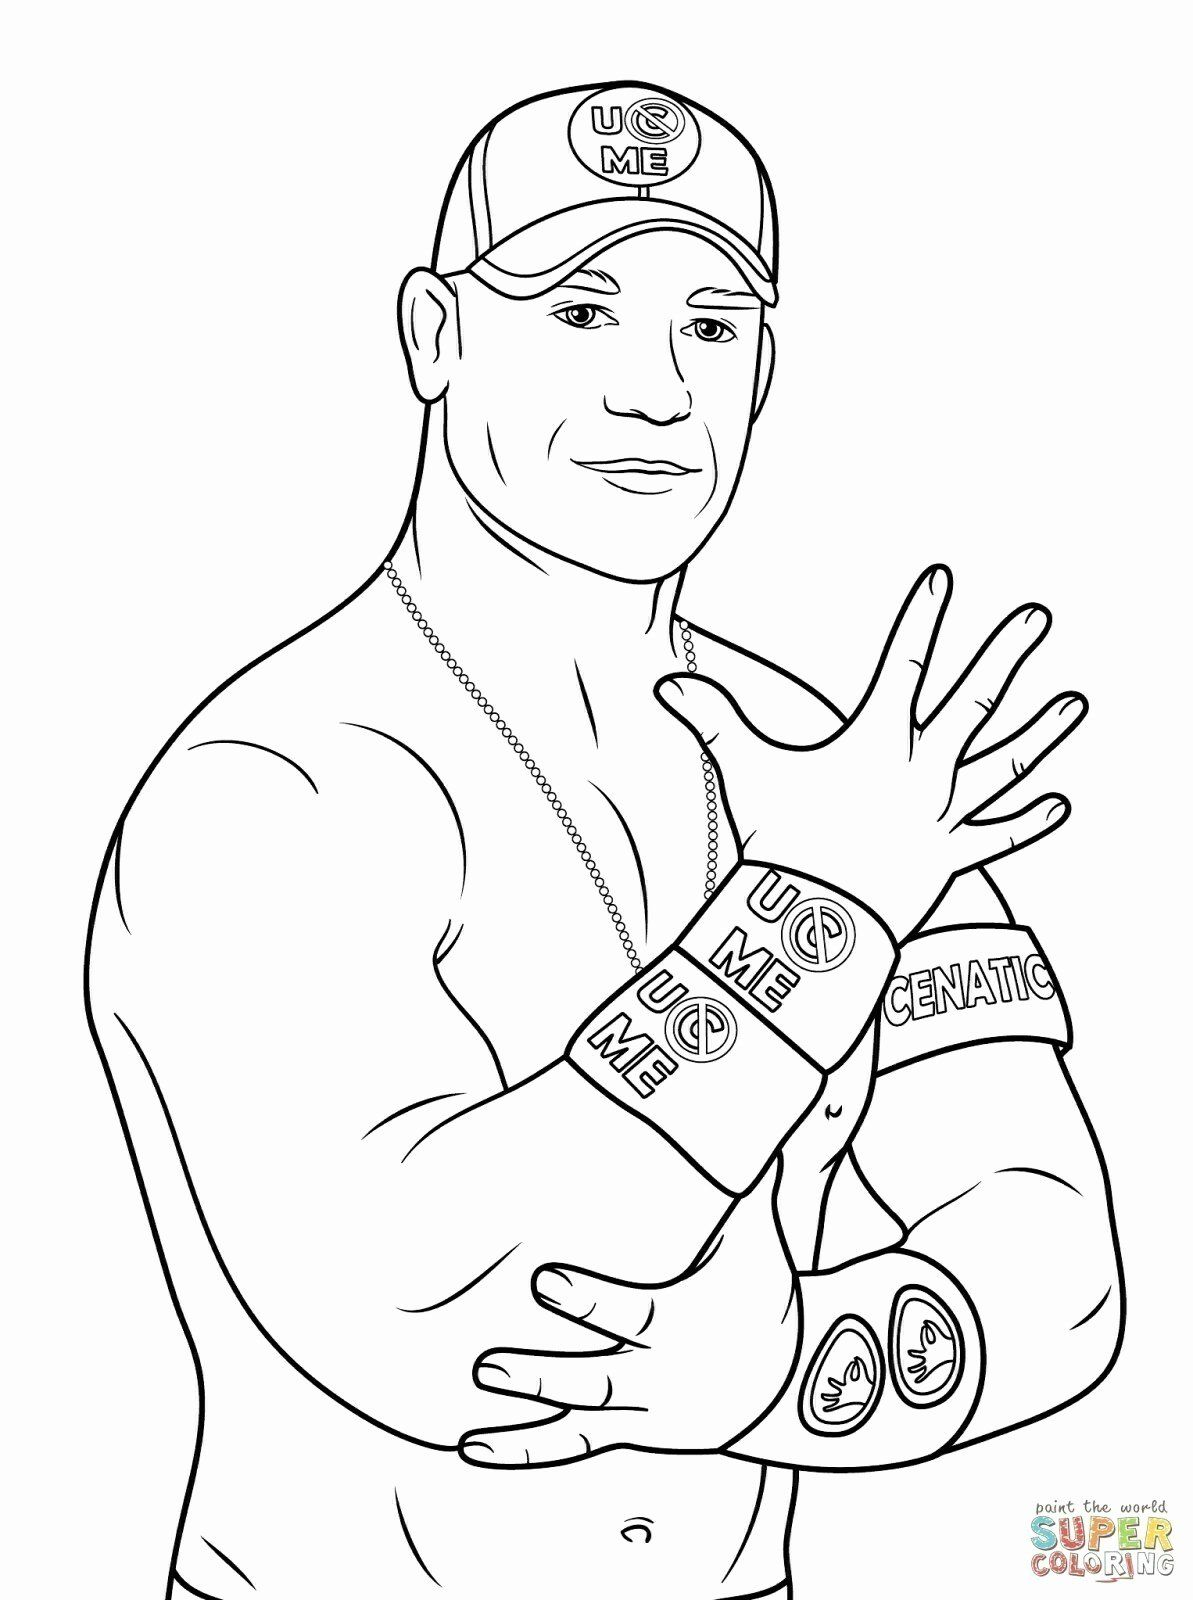 Space Mindfulness Coloring With Images Wwe Coloring Pages